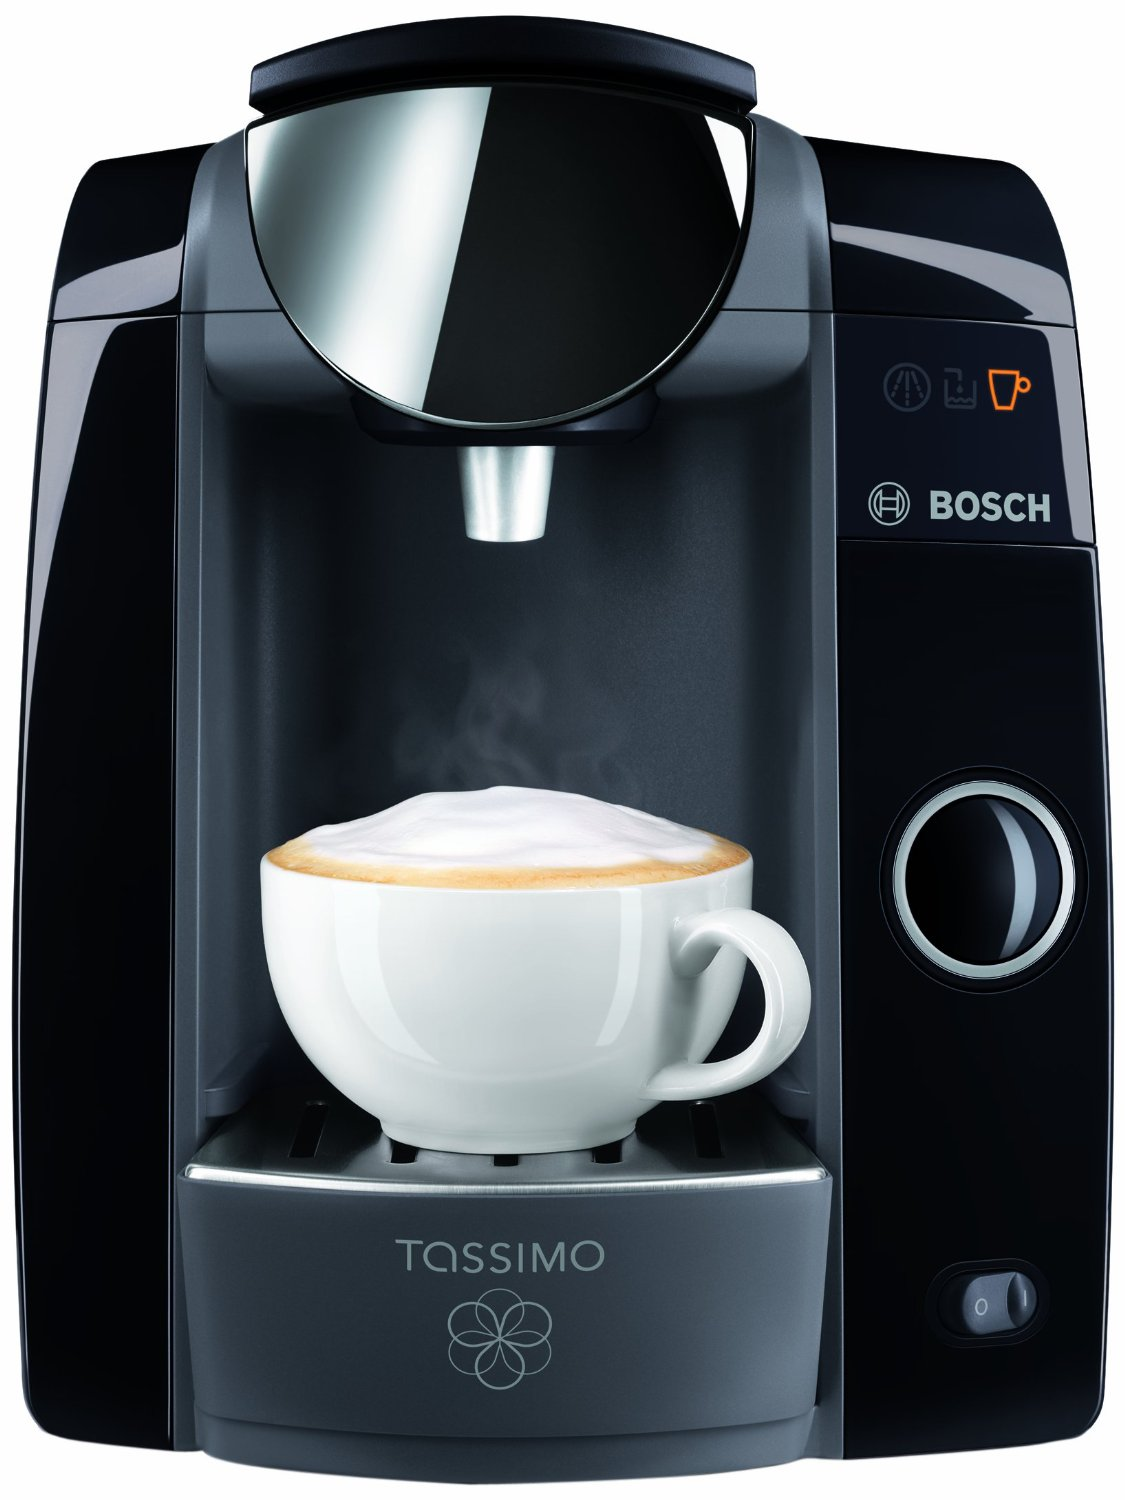 amazon canada deal save 50 off tassimo coffee maker only. Black Bedroom Furniture Sets. Home Design Ideas